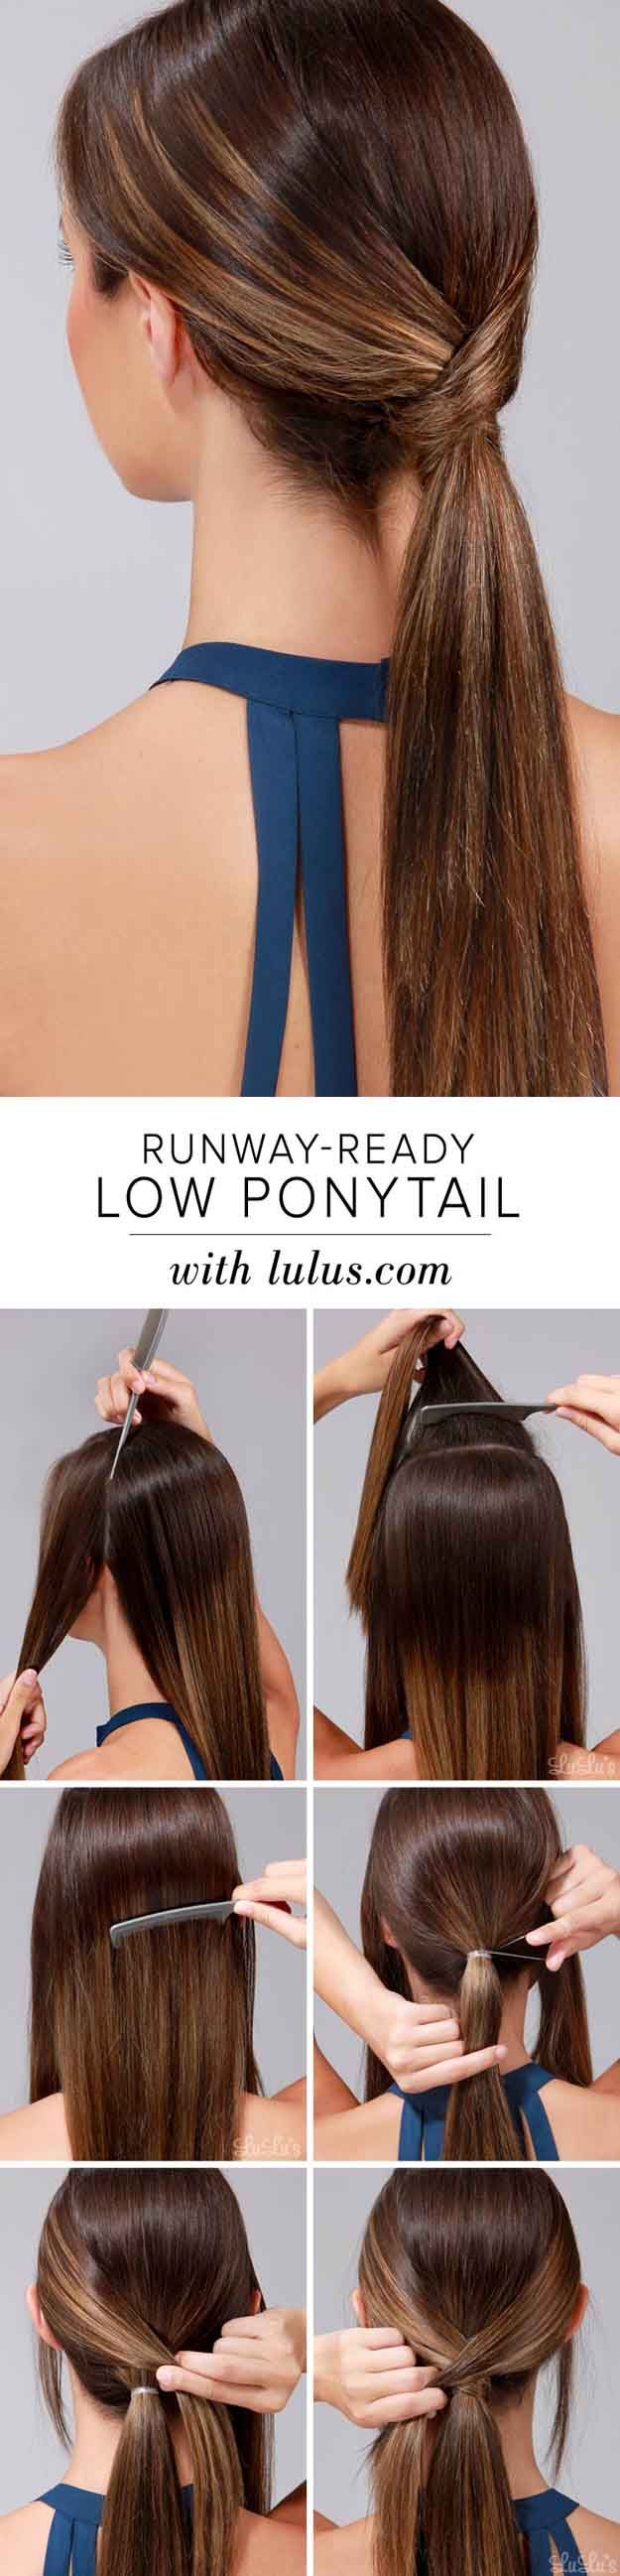 Quick and Easy Hairstyles for Straight Hair - How To Runway Ready Low Ponytail -...